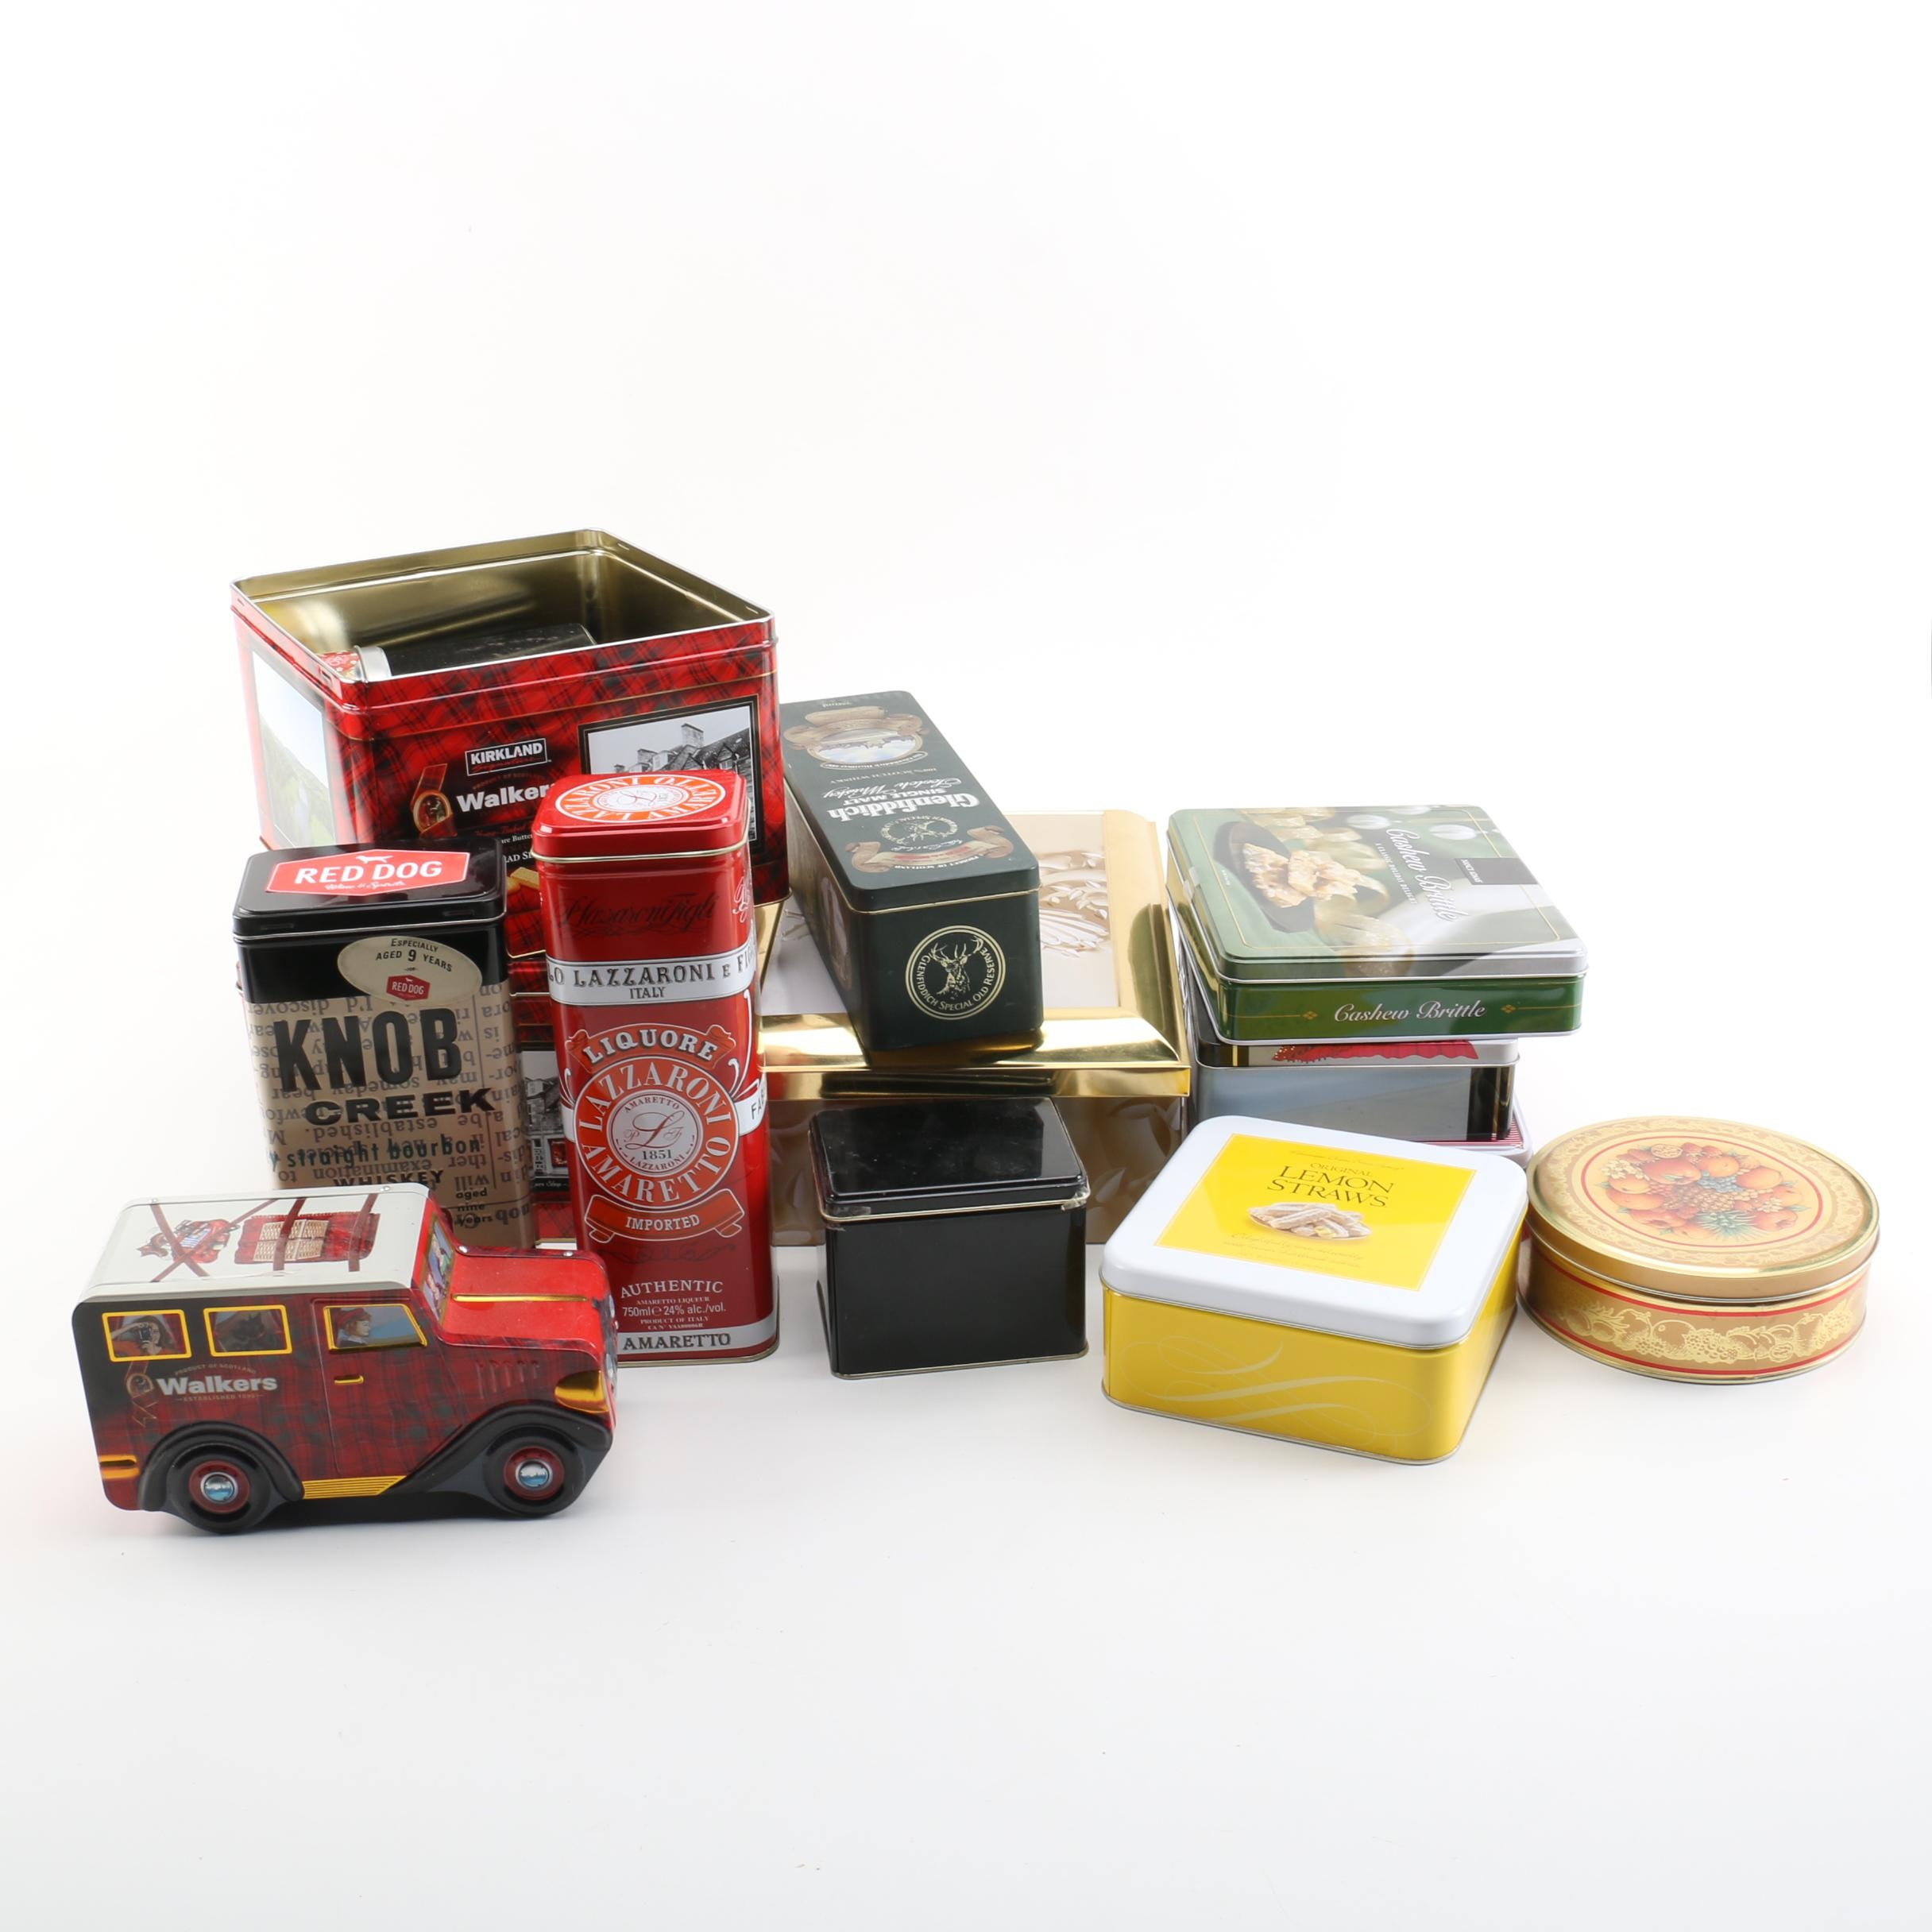 Knob Creek, Walkers Shortbread Cookies and Other Tins